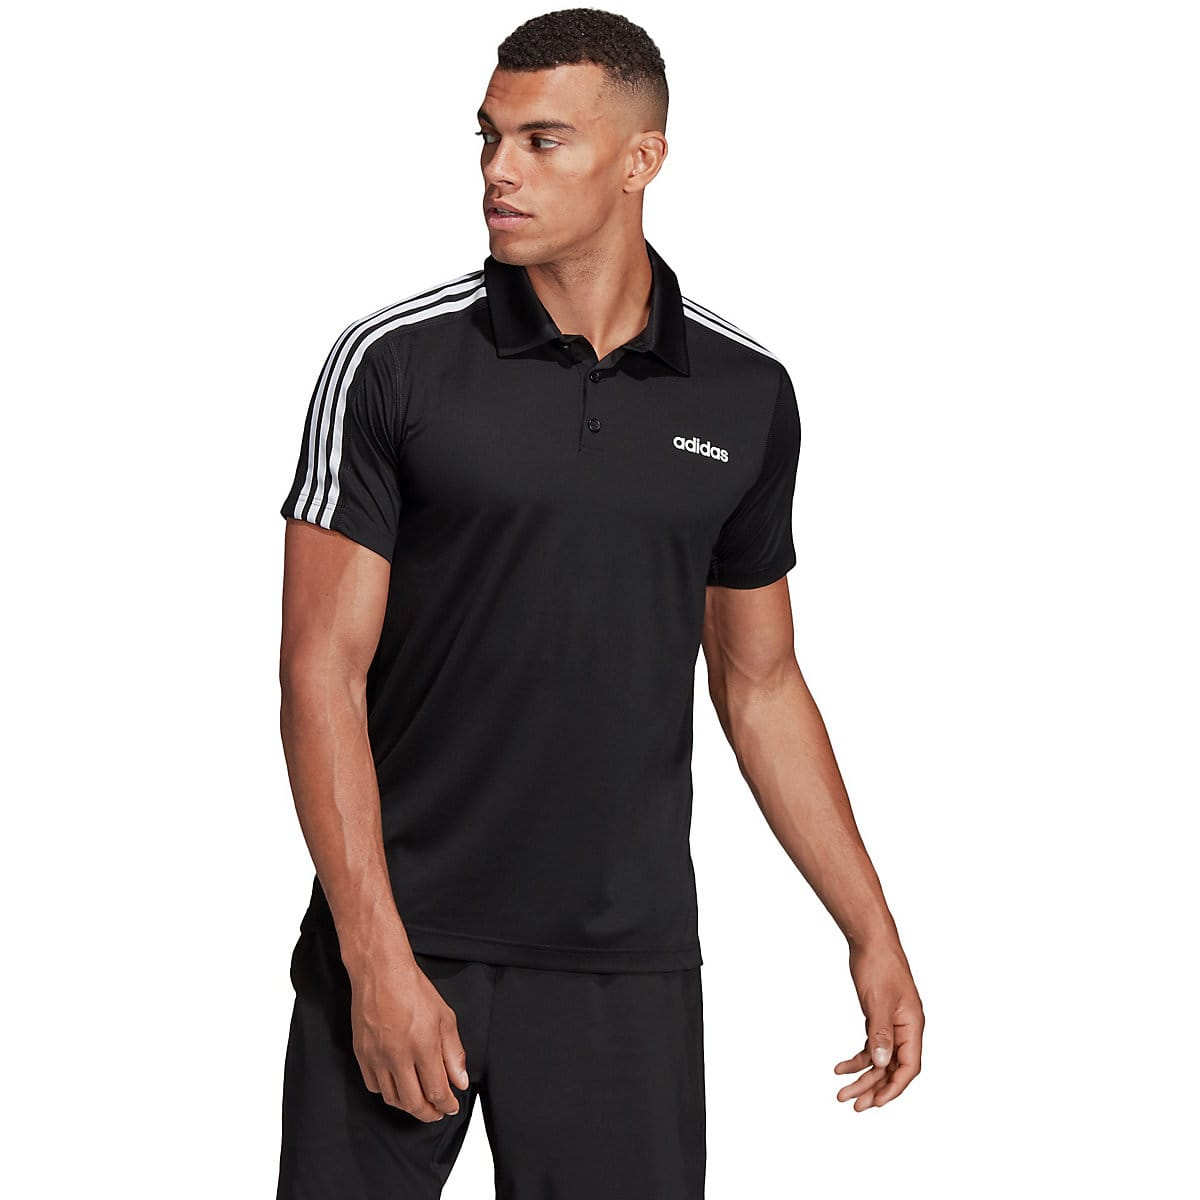 adidas Men's D2M 3S Polo Shirt (various colors) 3 for $48 ($16 each) + free shipping